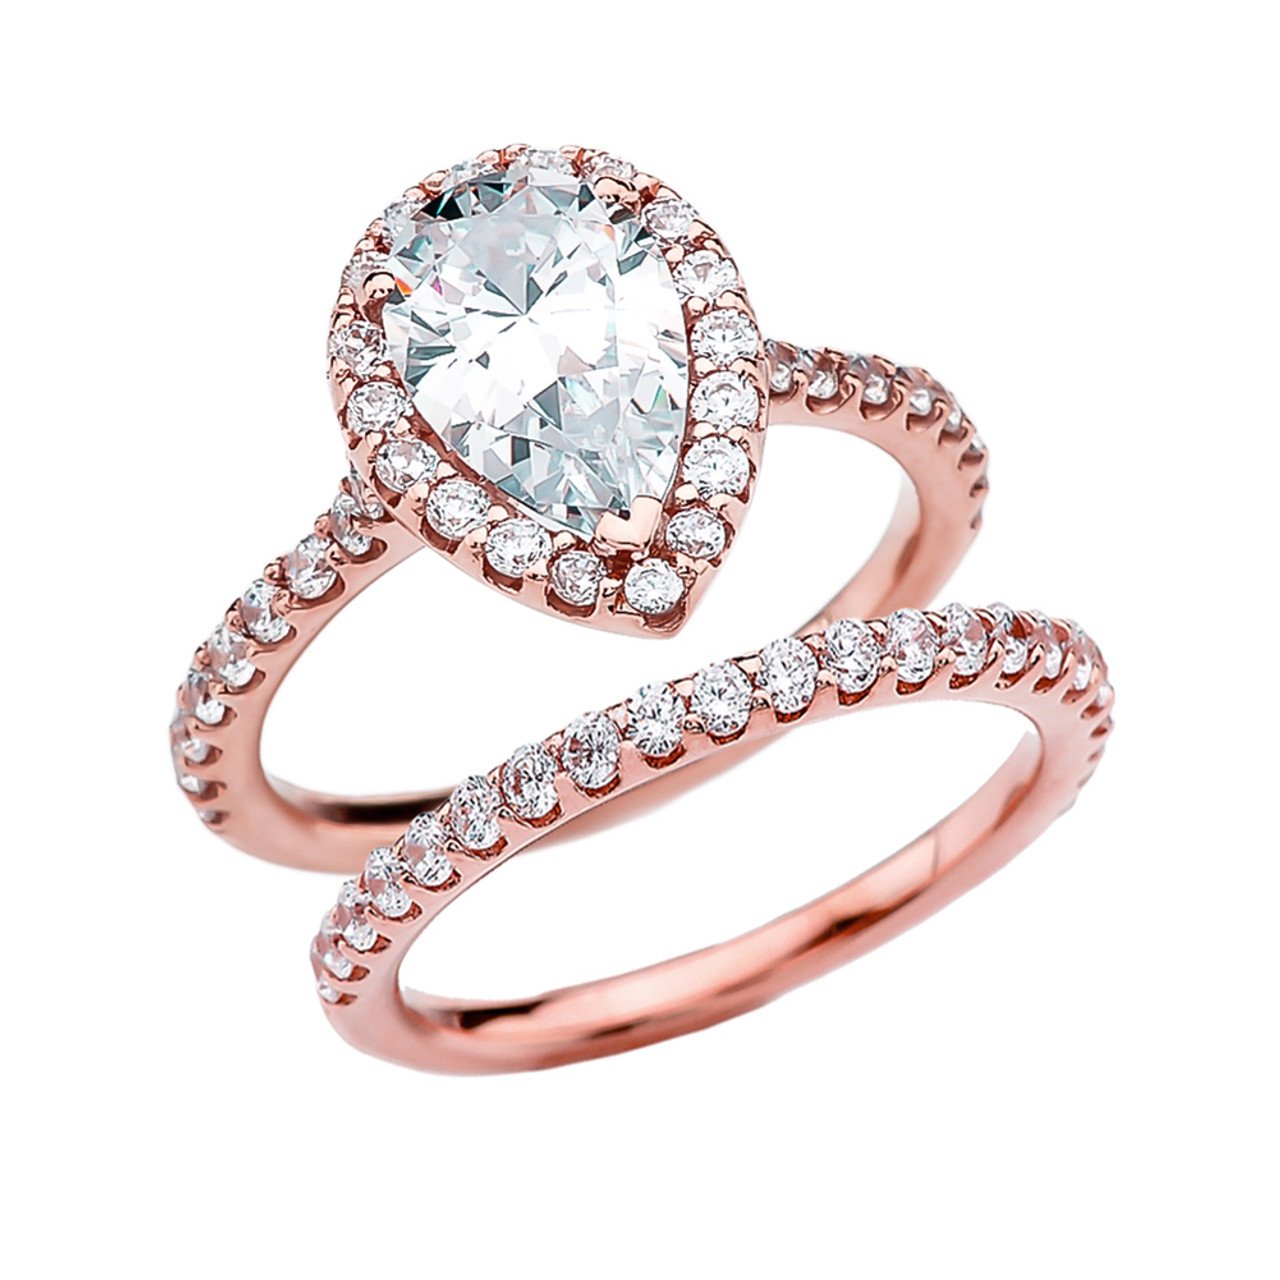 Cubic Zirconia Pear Shape Solitaire Elegant Rose Gold Engagement Wedding Ring Set